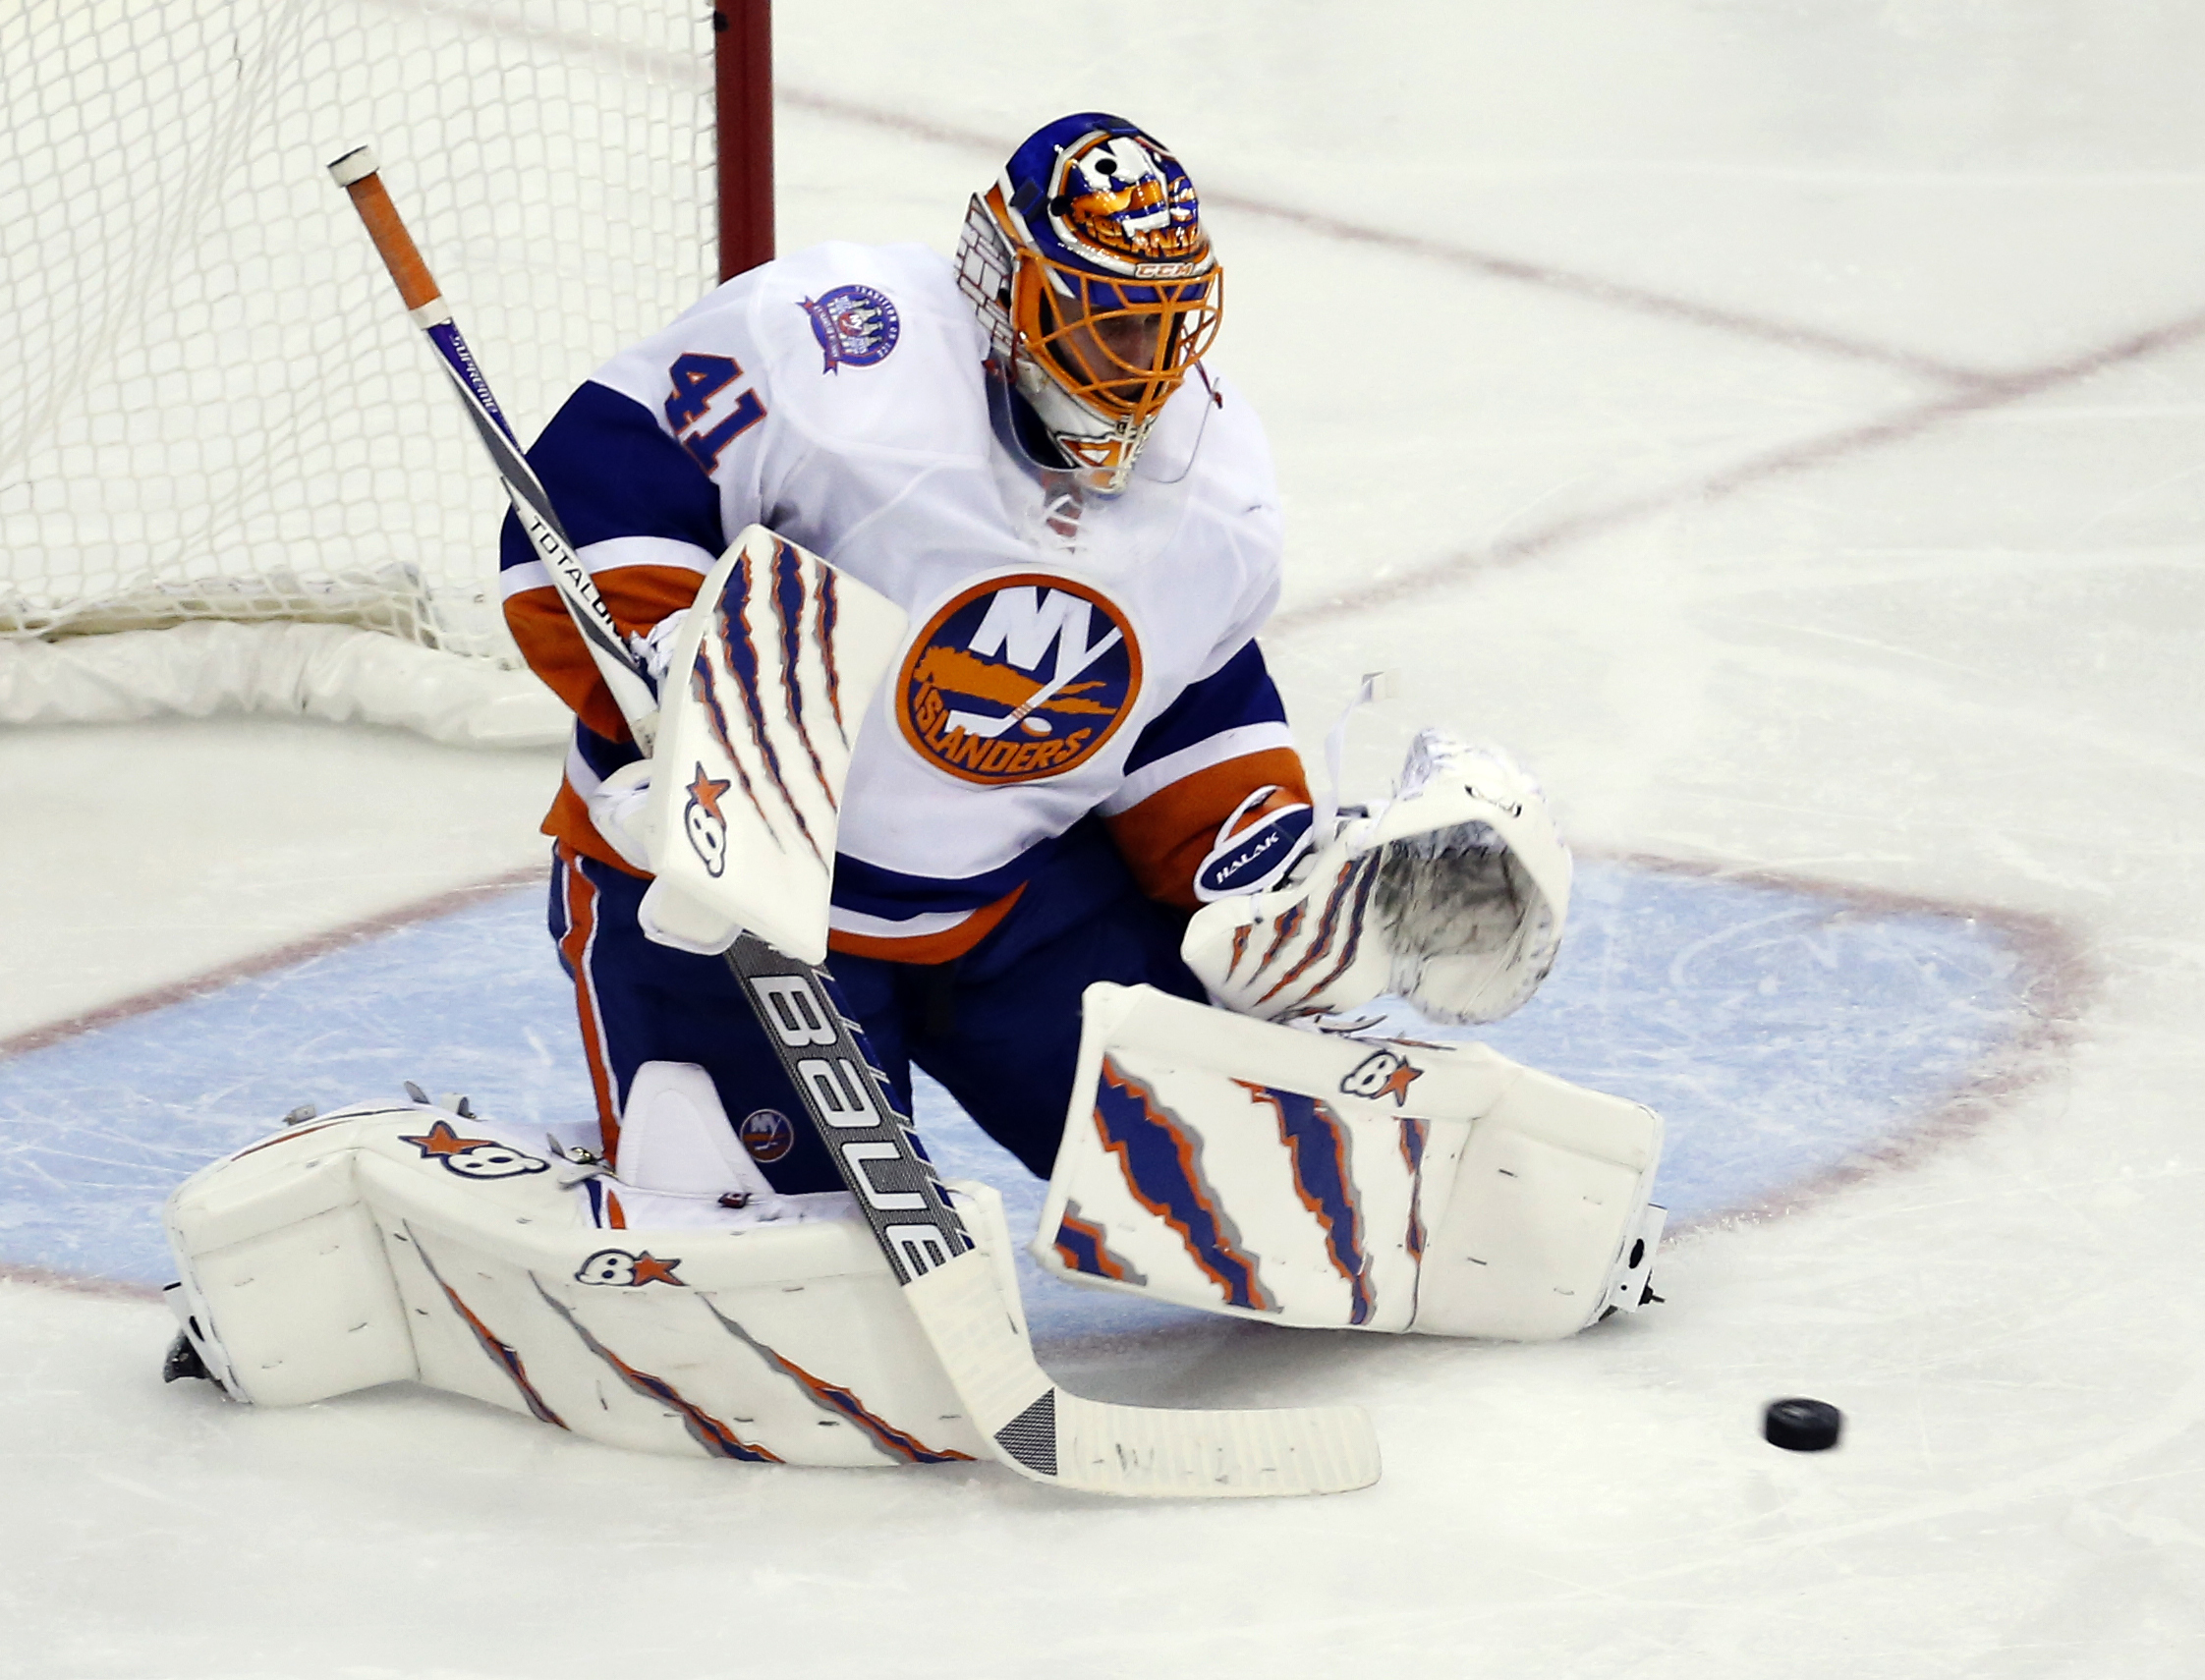 New York Islanders goalie Jaroslav Halak (41), from Slovakia, prepares to catch a shot during the third period of Game 2 in the first round of the NHL hockey Stanley Cup playoffs against the Washington Capitals, Friday, April 17, 2015, in Washington. The